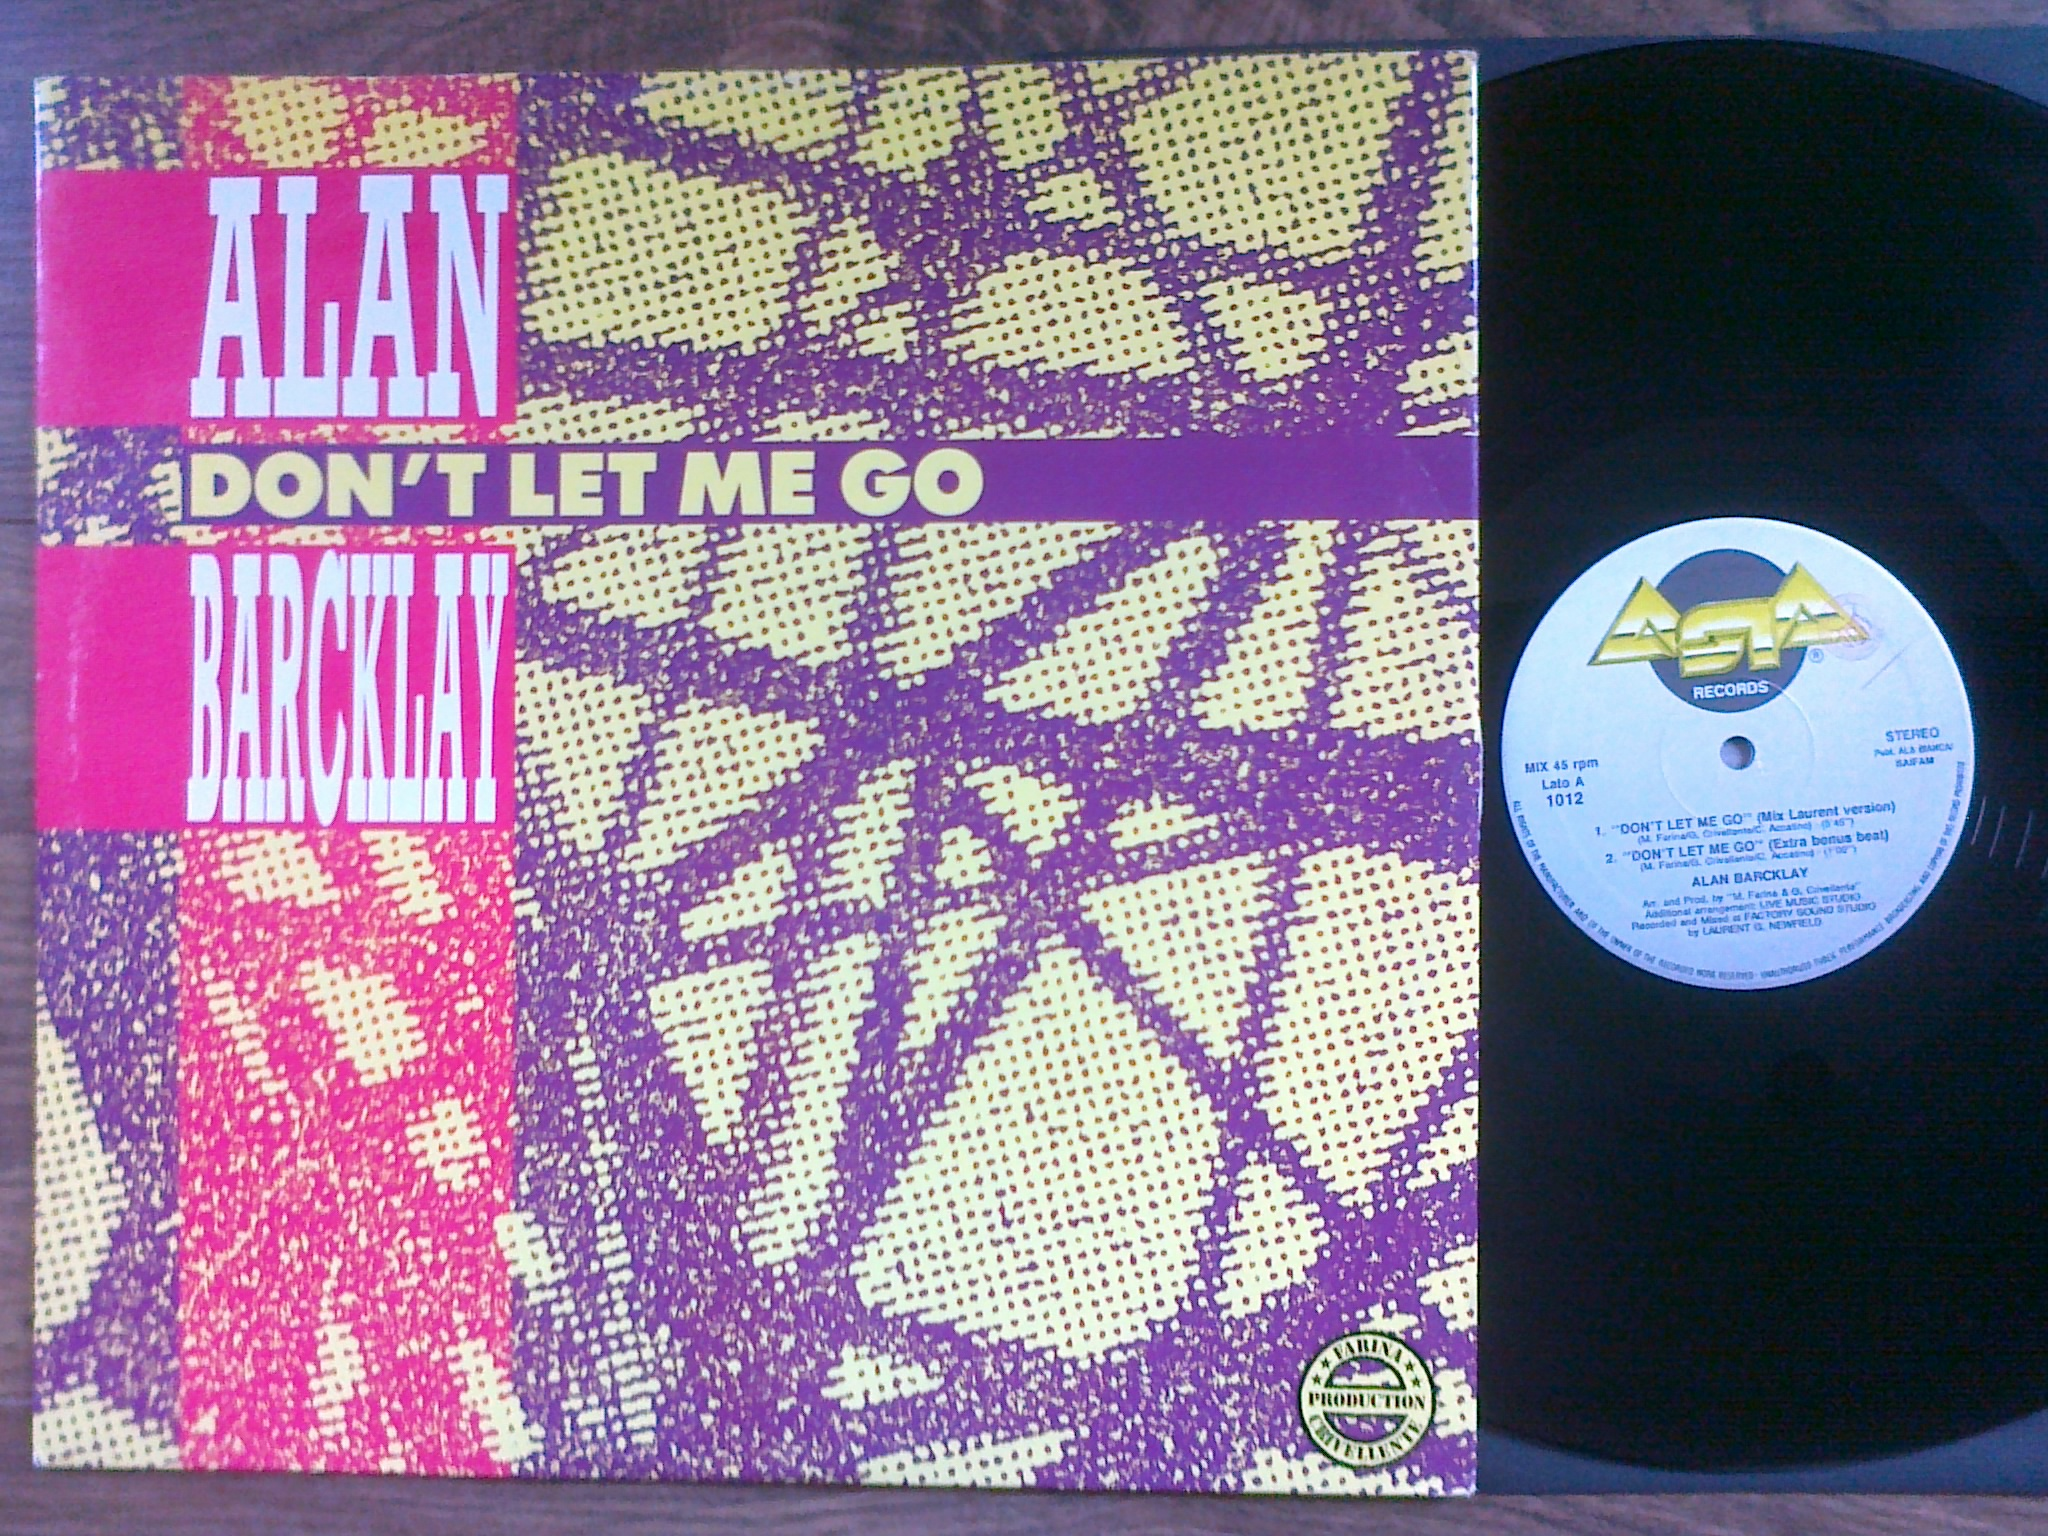 Alan Barcklay - Don't Let Me Go